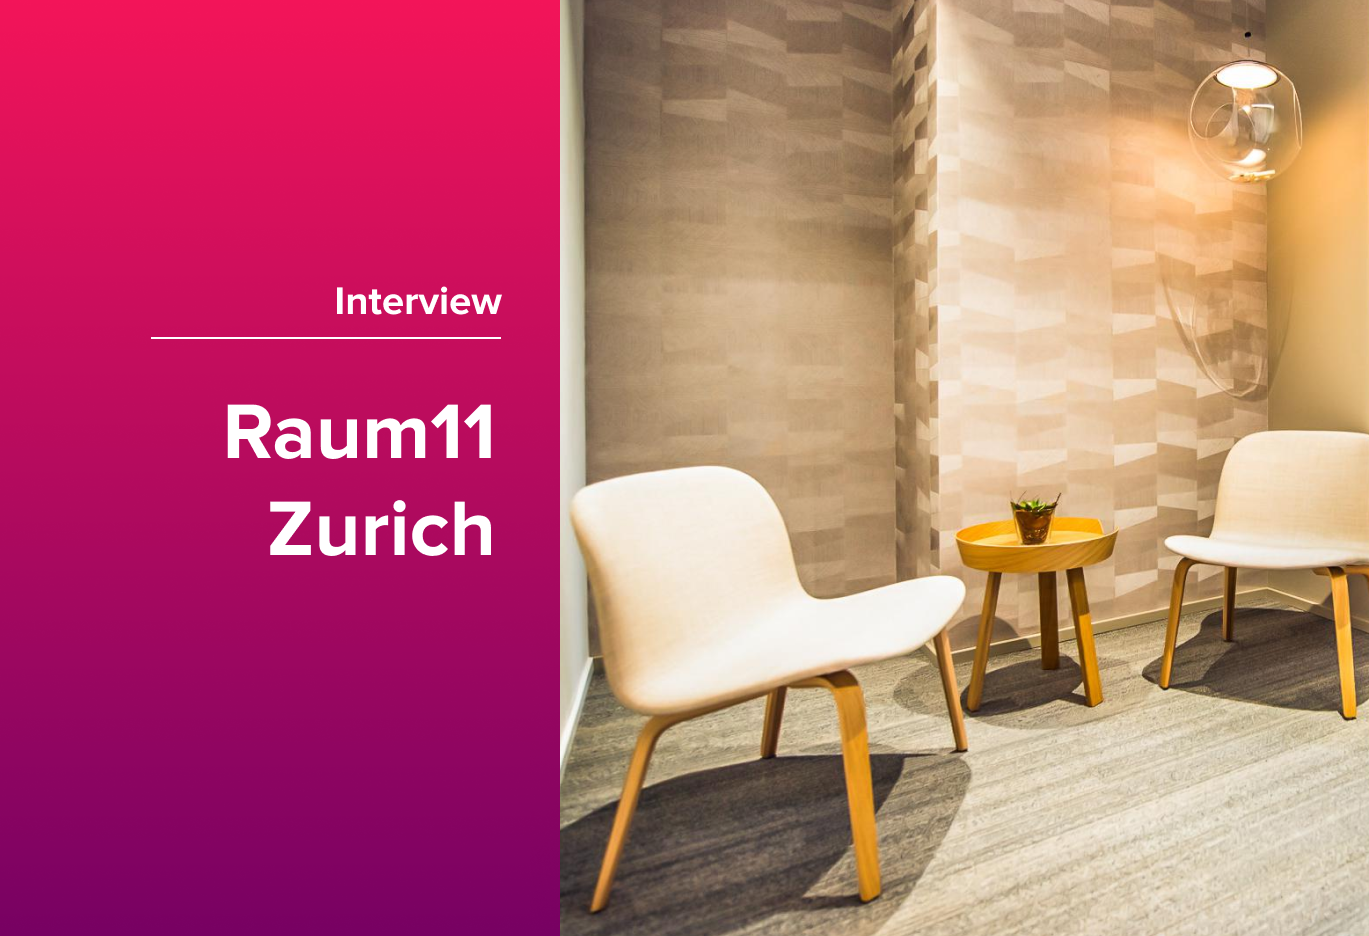 deskbird Coworking Spaces: Welcome to Raum11